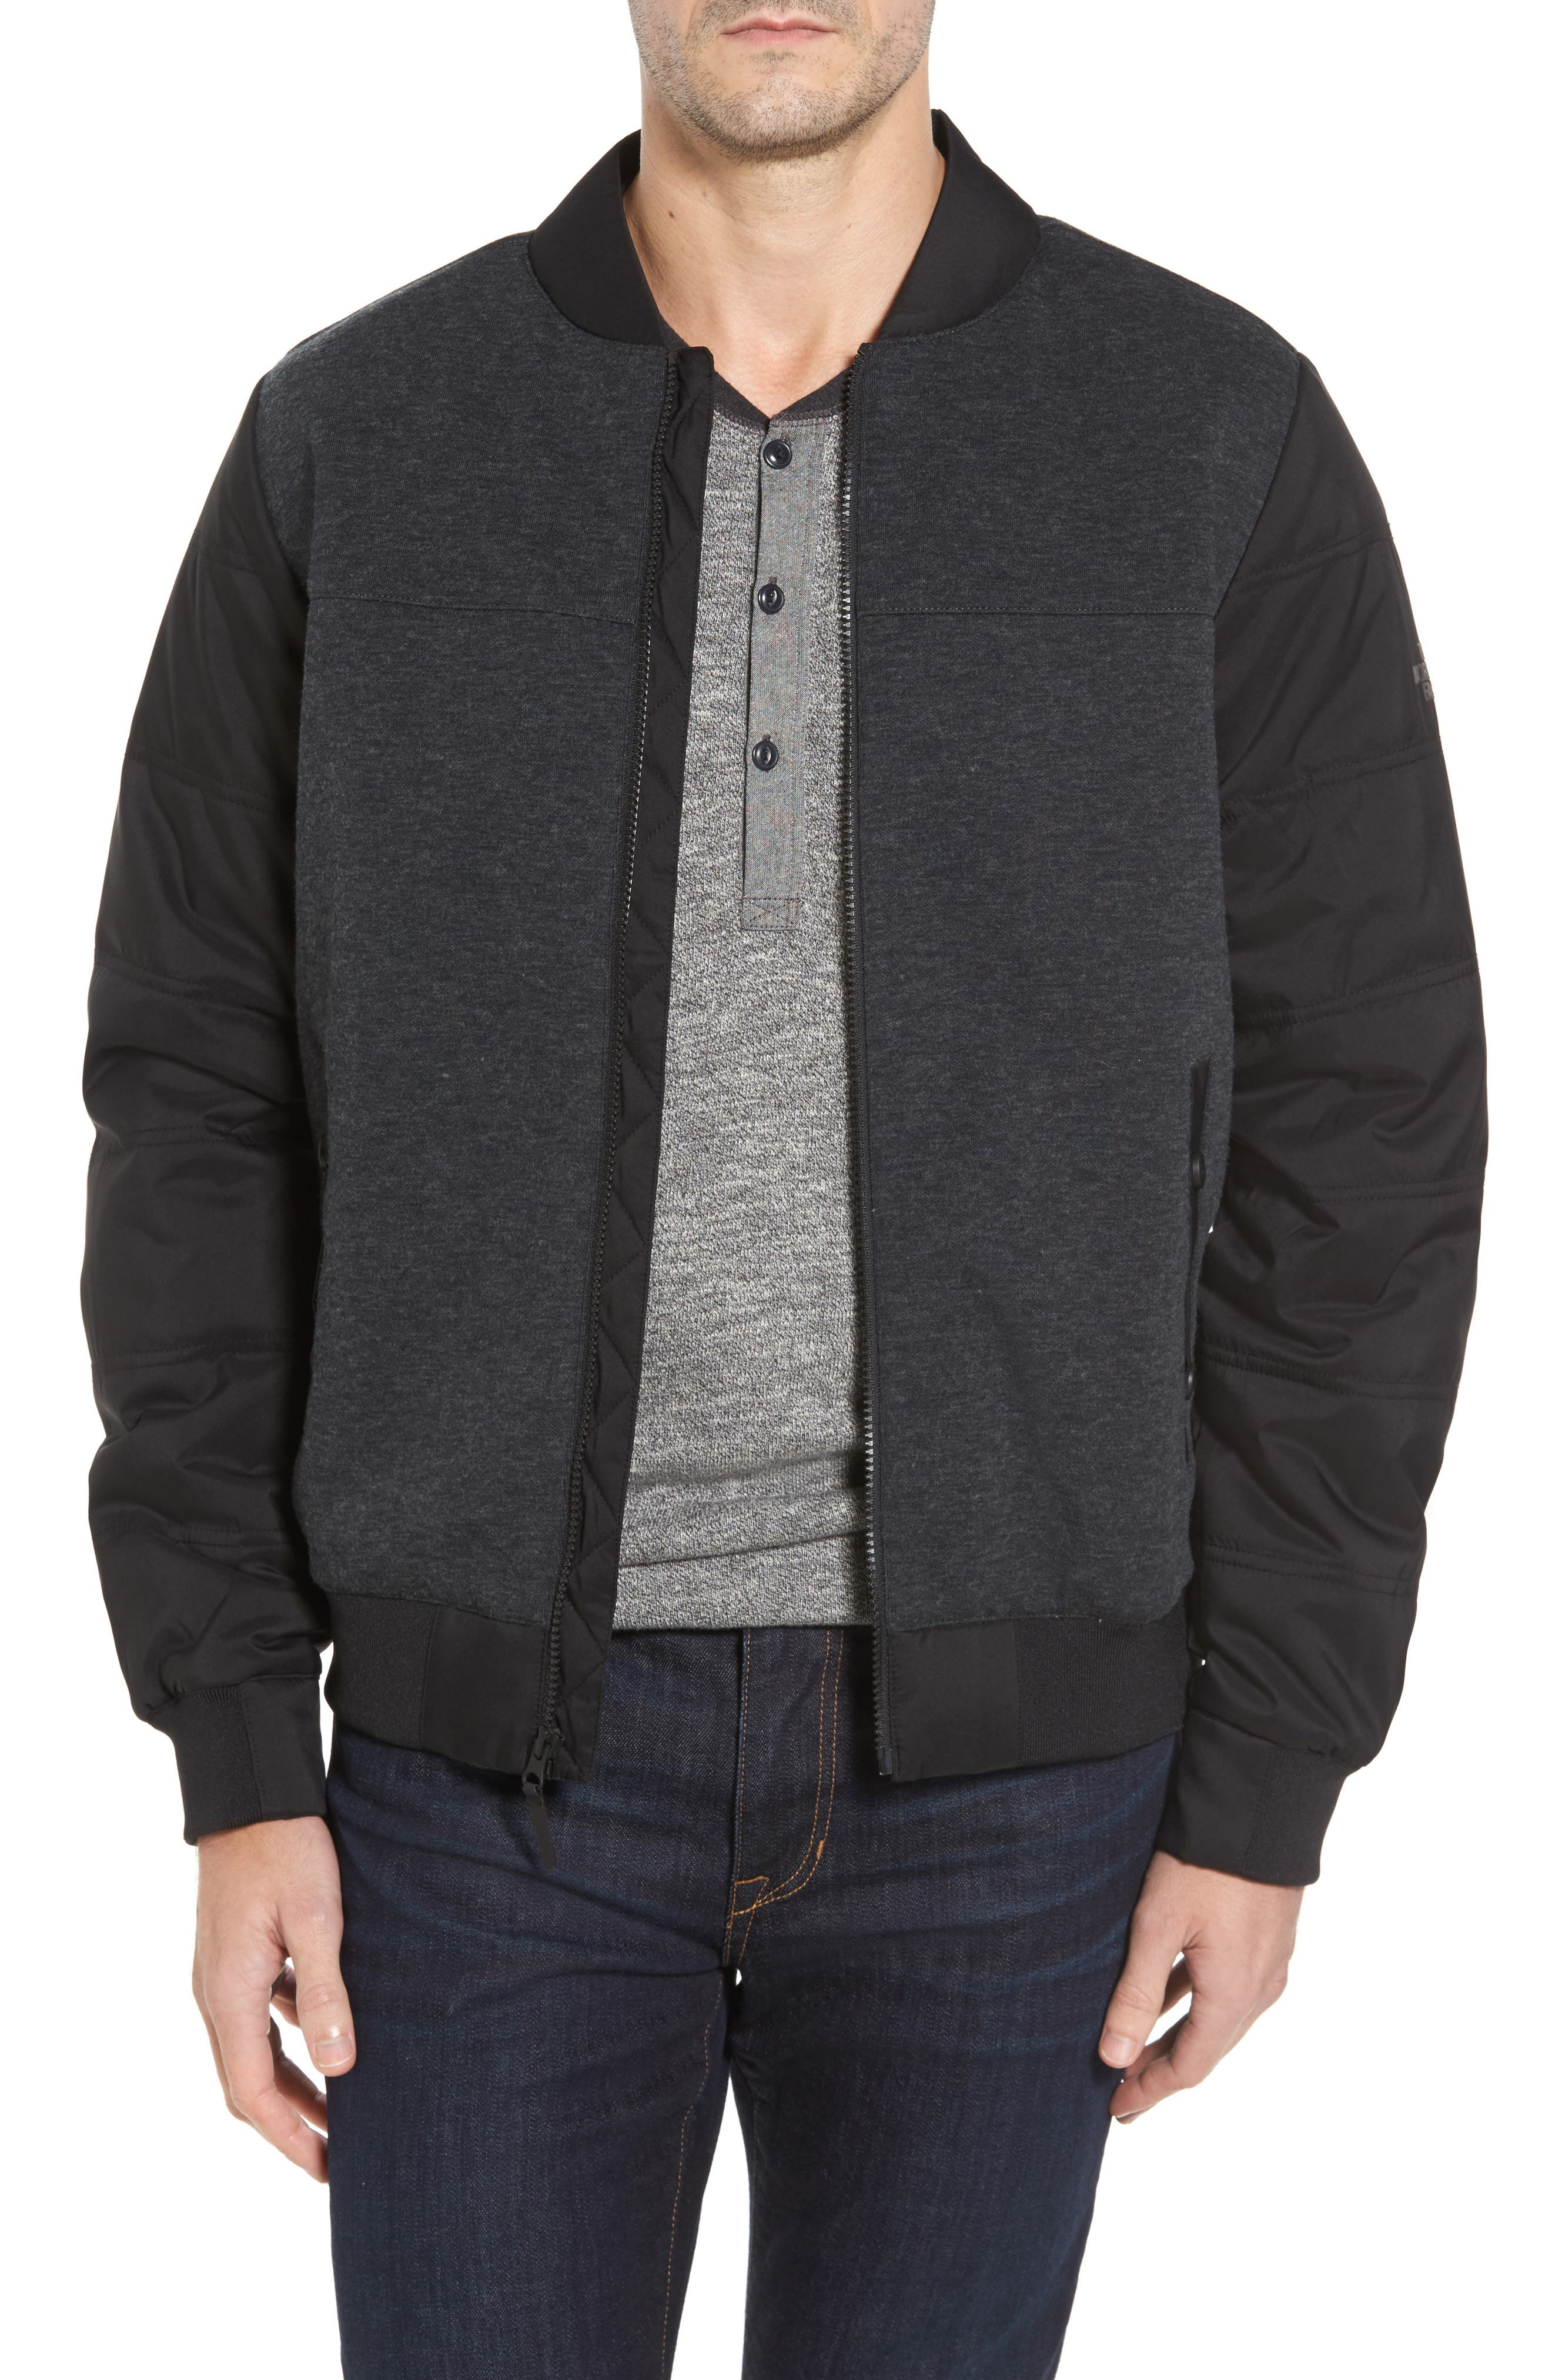 Far Northern Hybrid Bomber Jacket,                             Main thumbnail 1, color,                             DARK GREY HEATHER/ BLACK